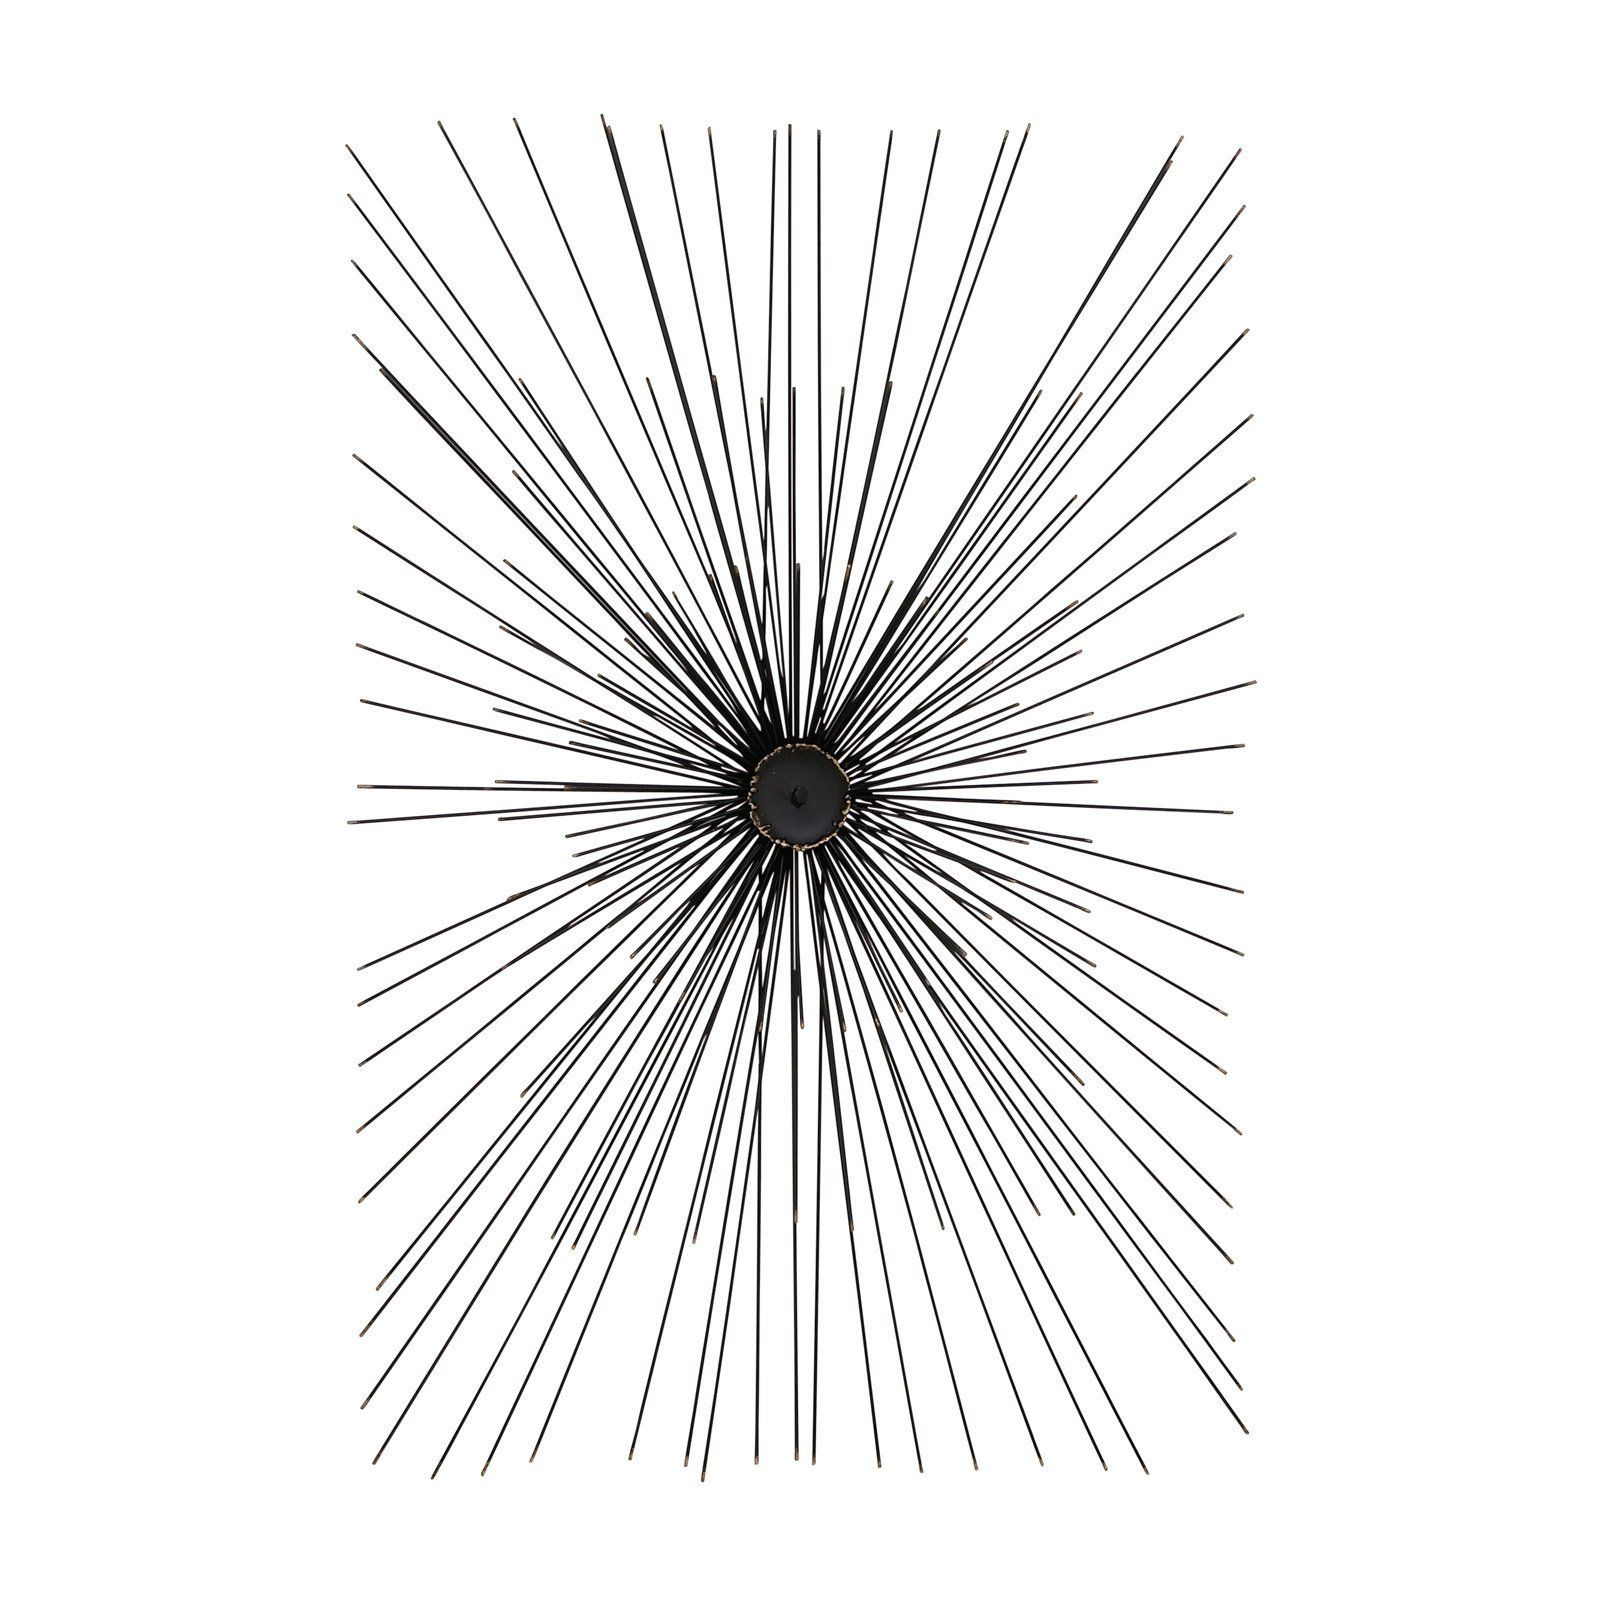 Wiring decmode rectangular radial spiked metal wire wall sculpture 22w x